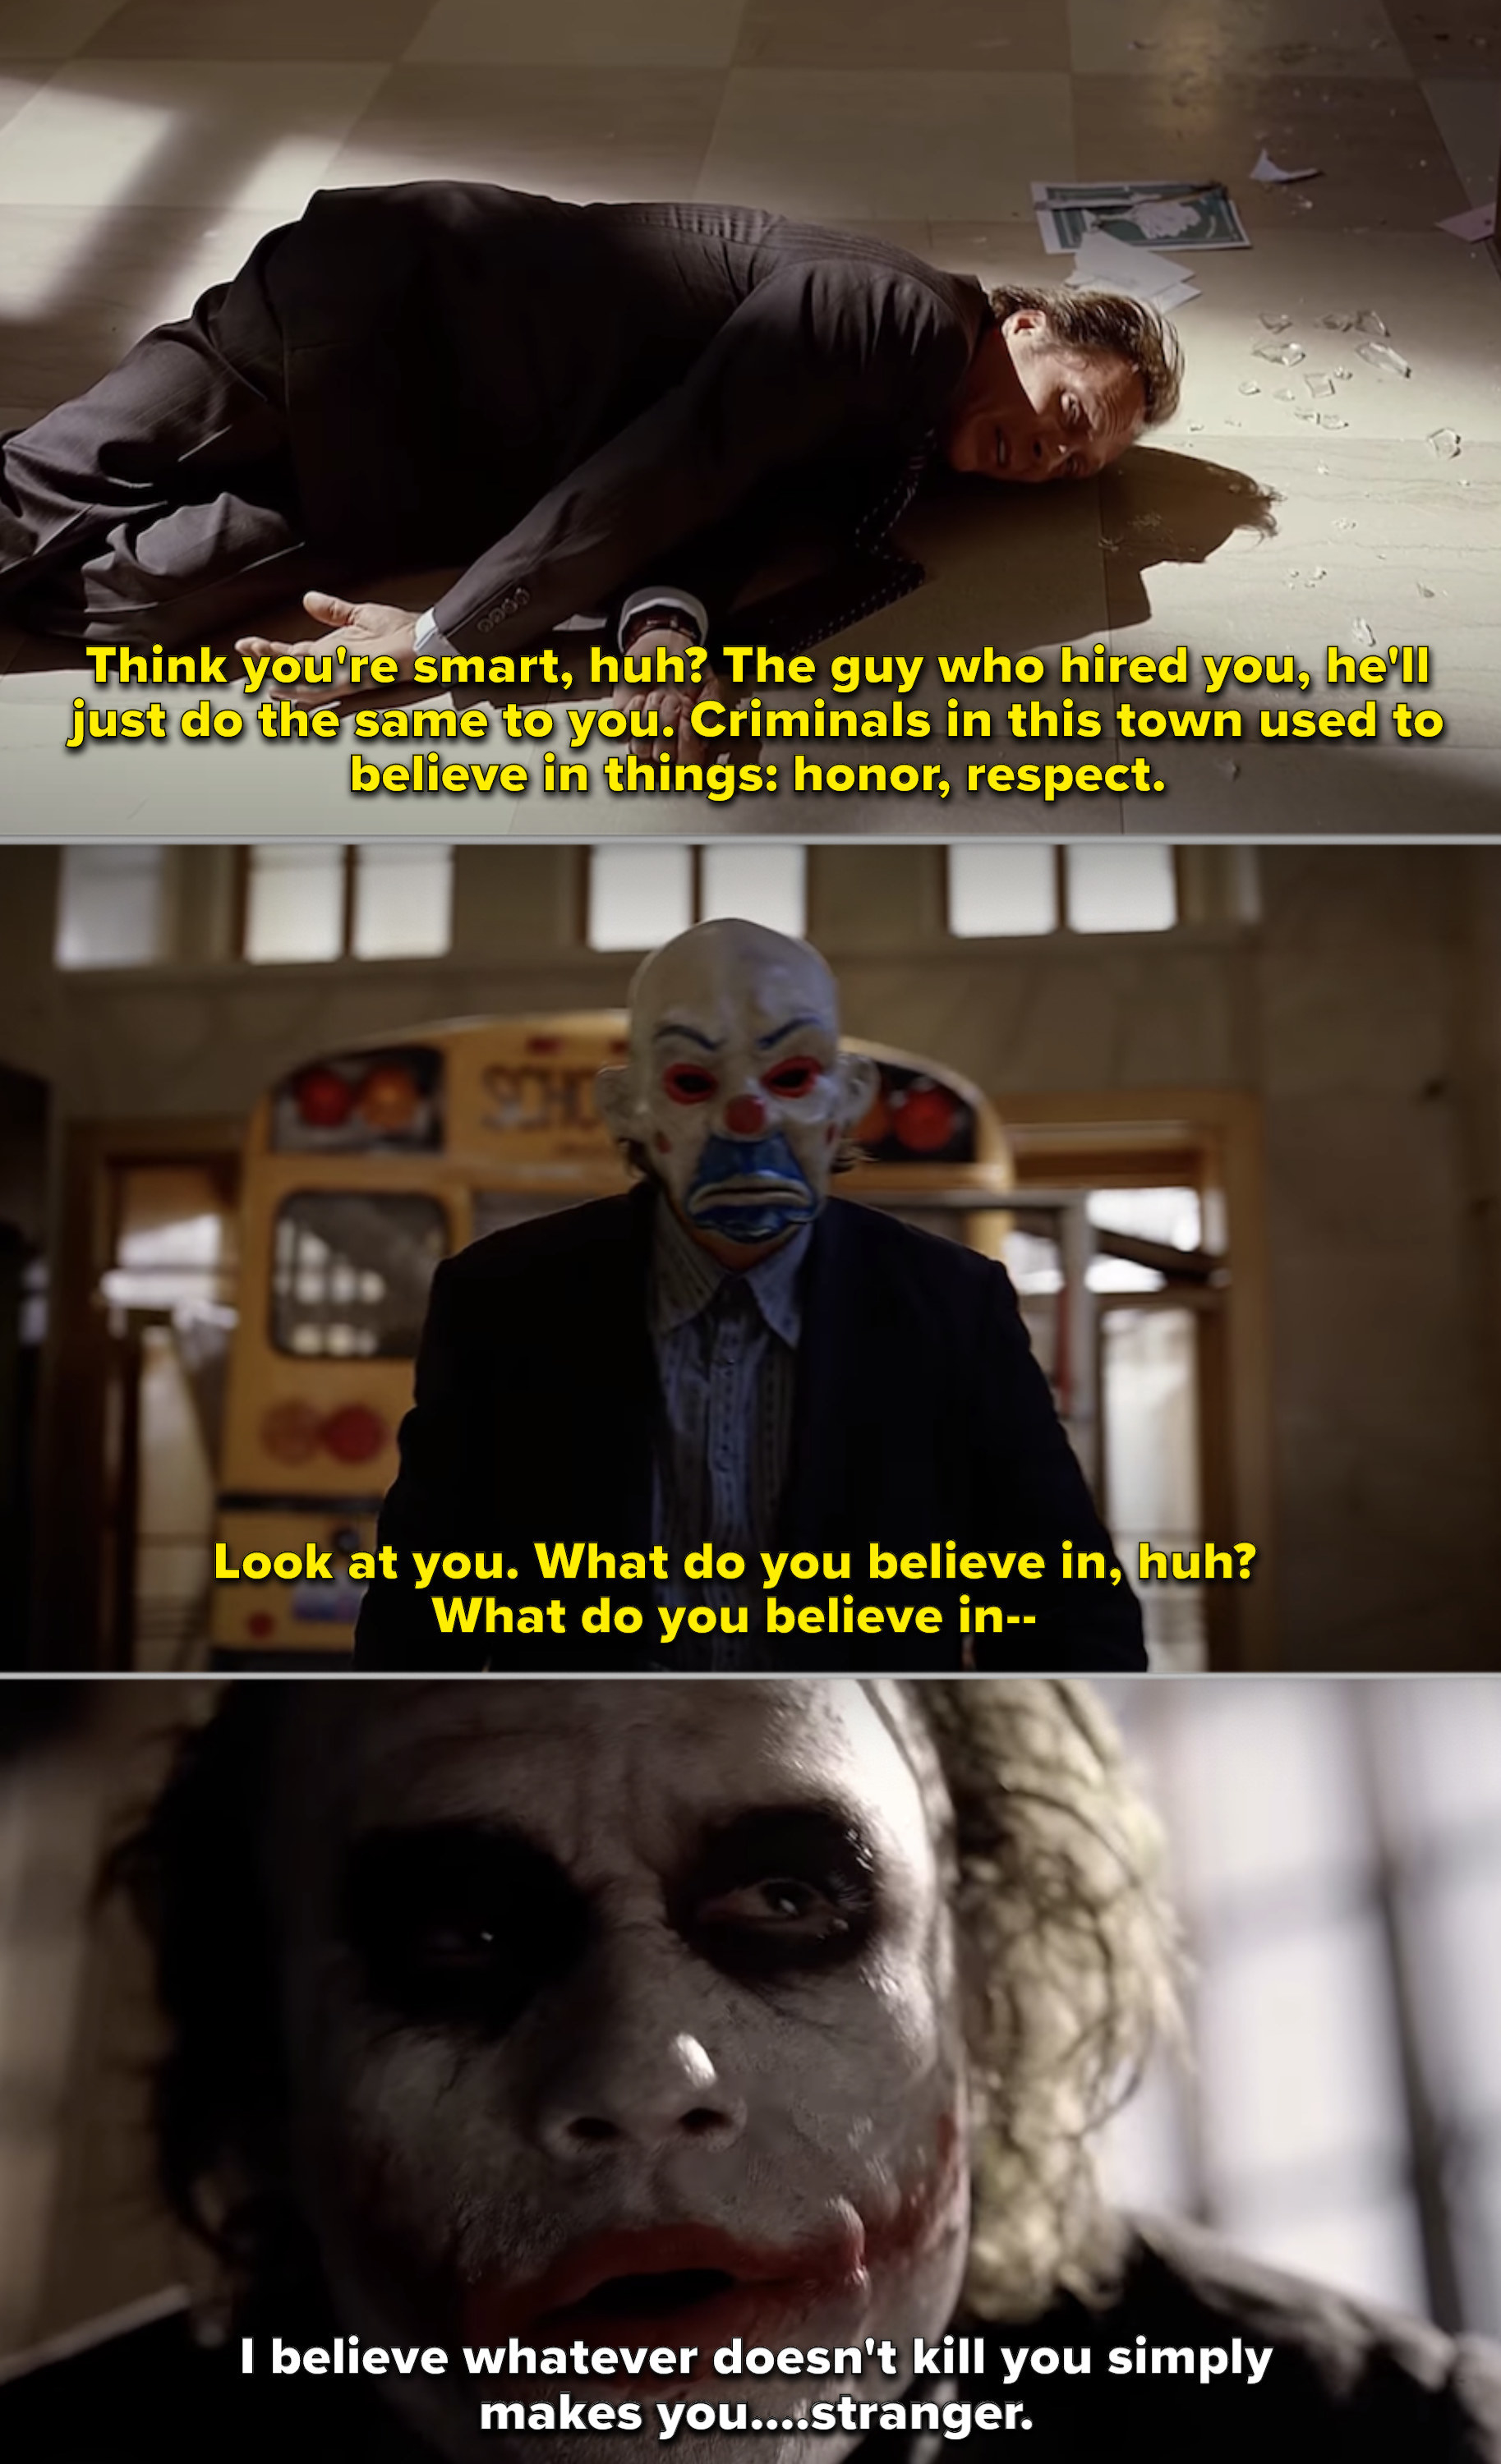 The Joker during the bank robbery